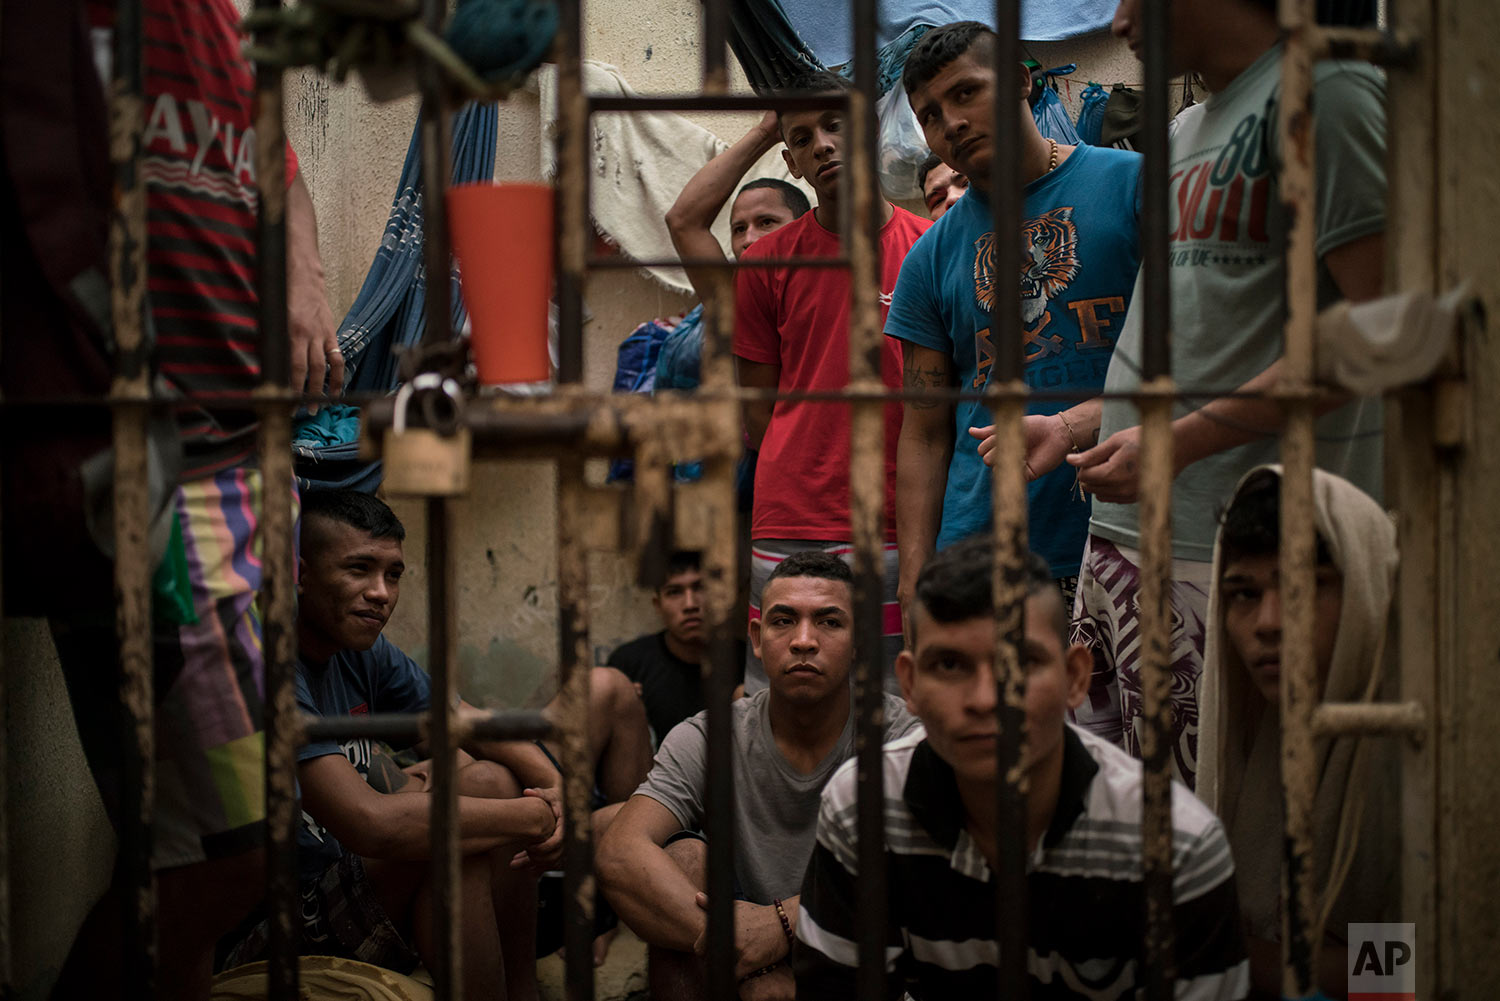 Inmates sit inside an overcrowded cell in a police station near Manaus, Brazil, Monday, Feb. 6, 2017. The beginning of the chain that feeds Brazilian gangs are improvised cells at police stations, where 10 percent of Brazil's more than 600,000 inmates await trial. (AP Photo/Felipe Dana)